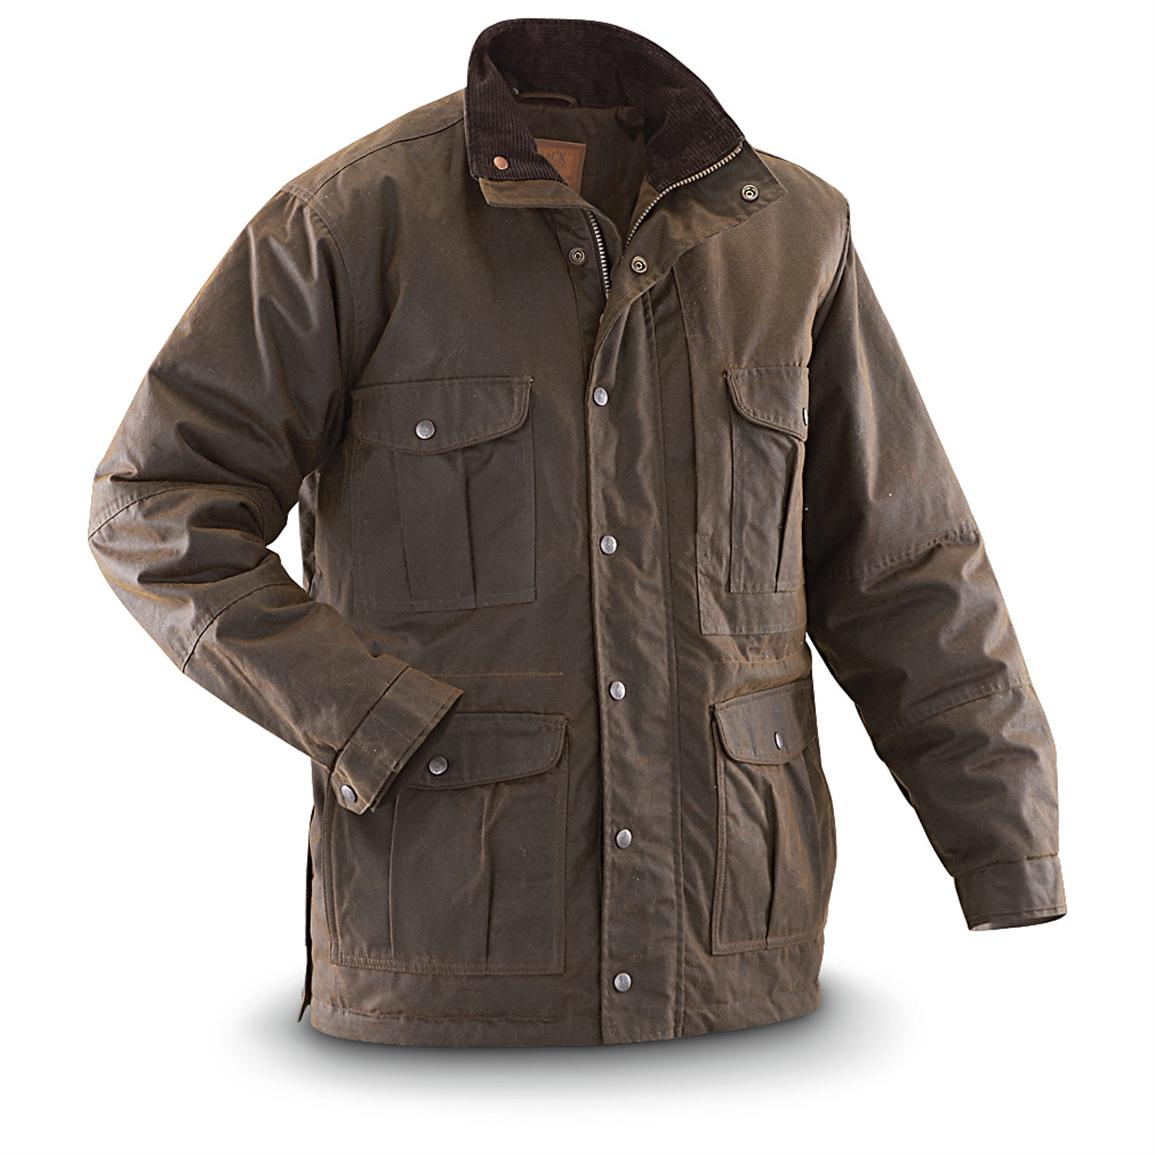 Outback Trading Company Conceal and Carry Buranda Jacket, Bronze